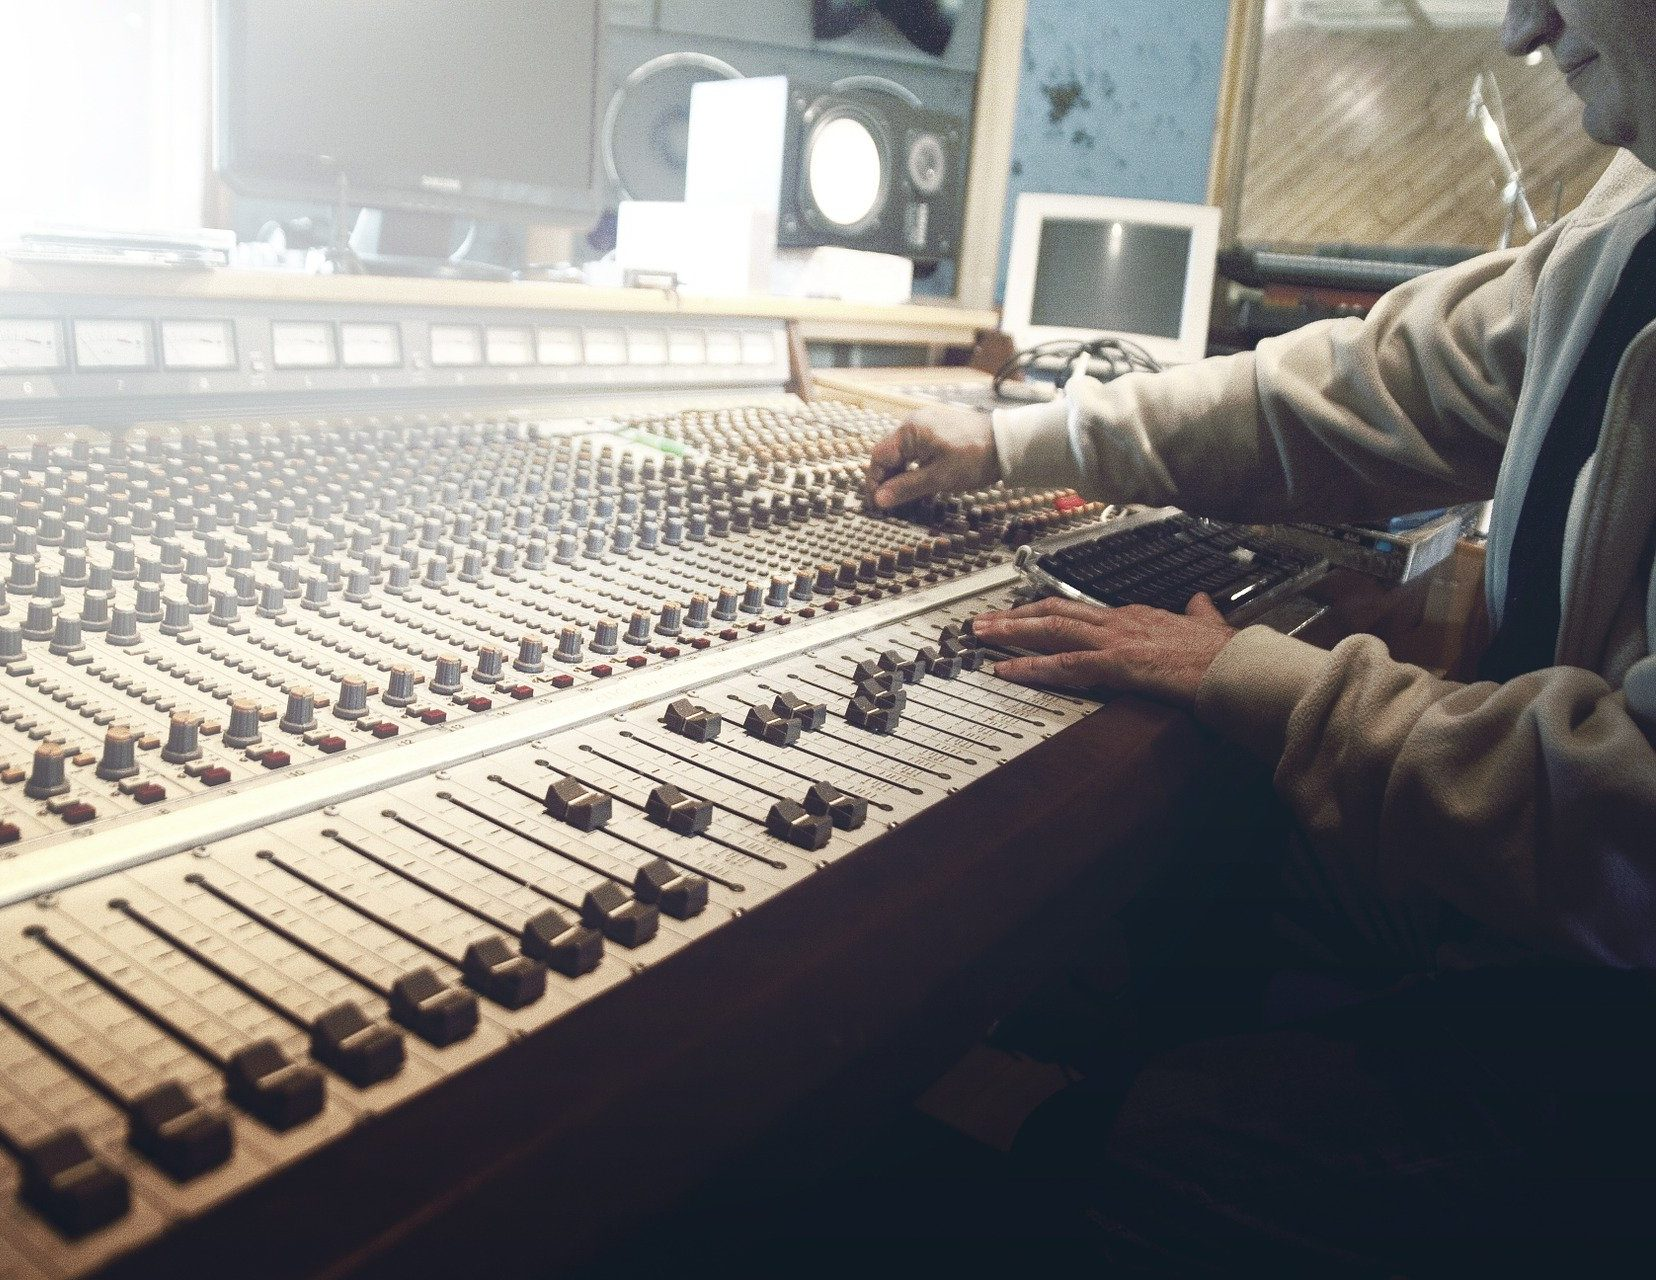 https://pixabay.com/photos/sound-studio-recording-faders-mixer-407216/